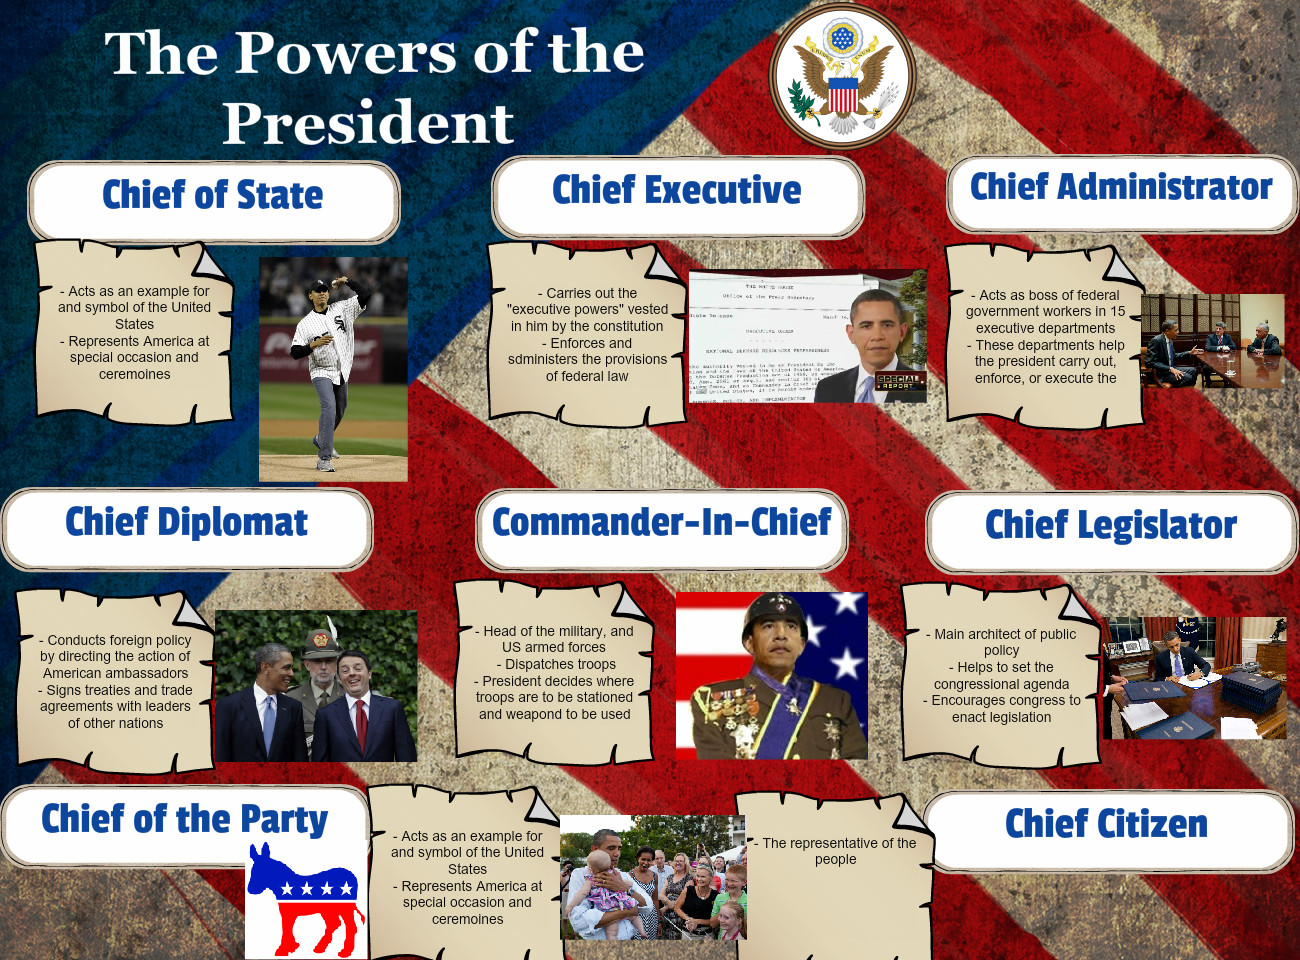 Help clipart chief citizen. The power of president